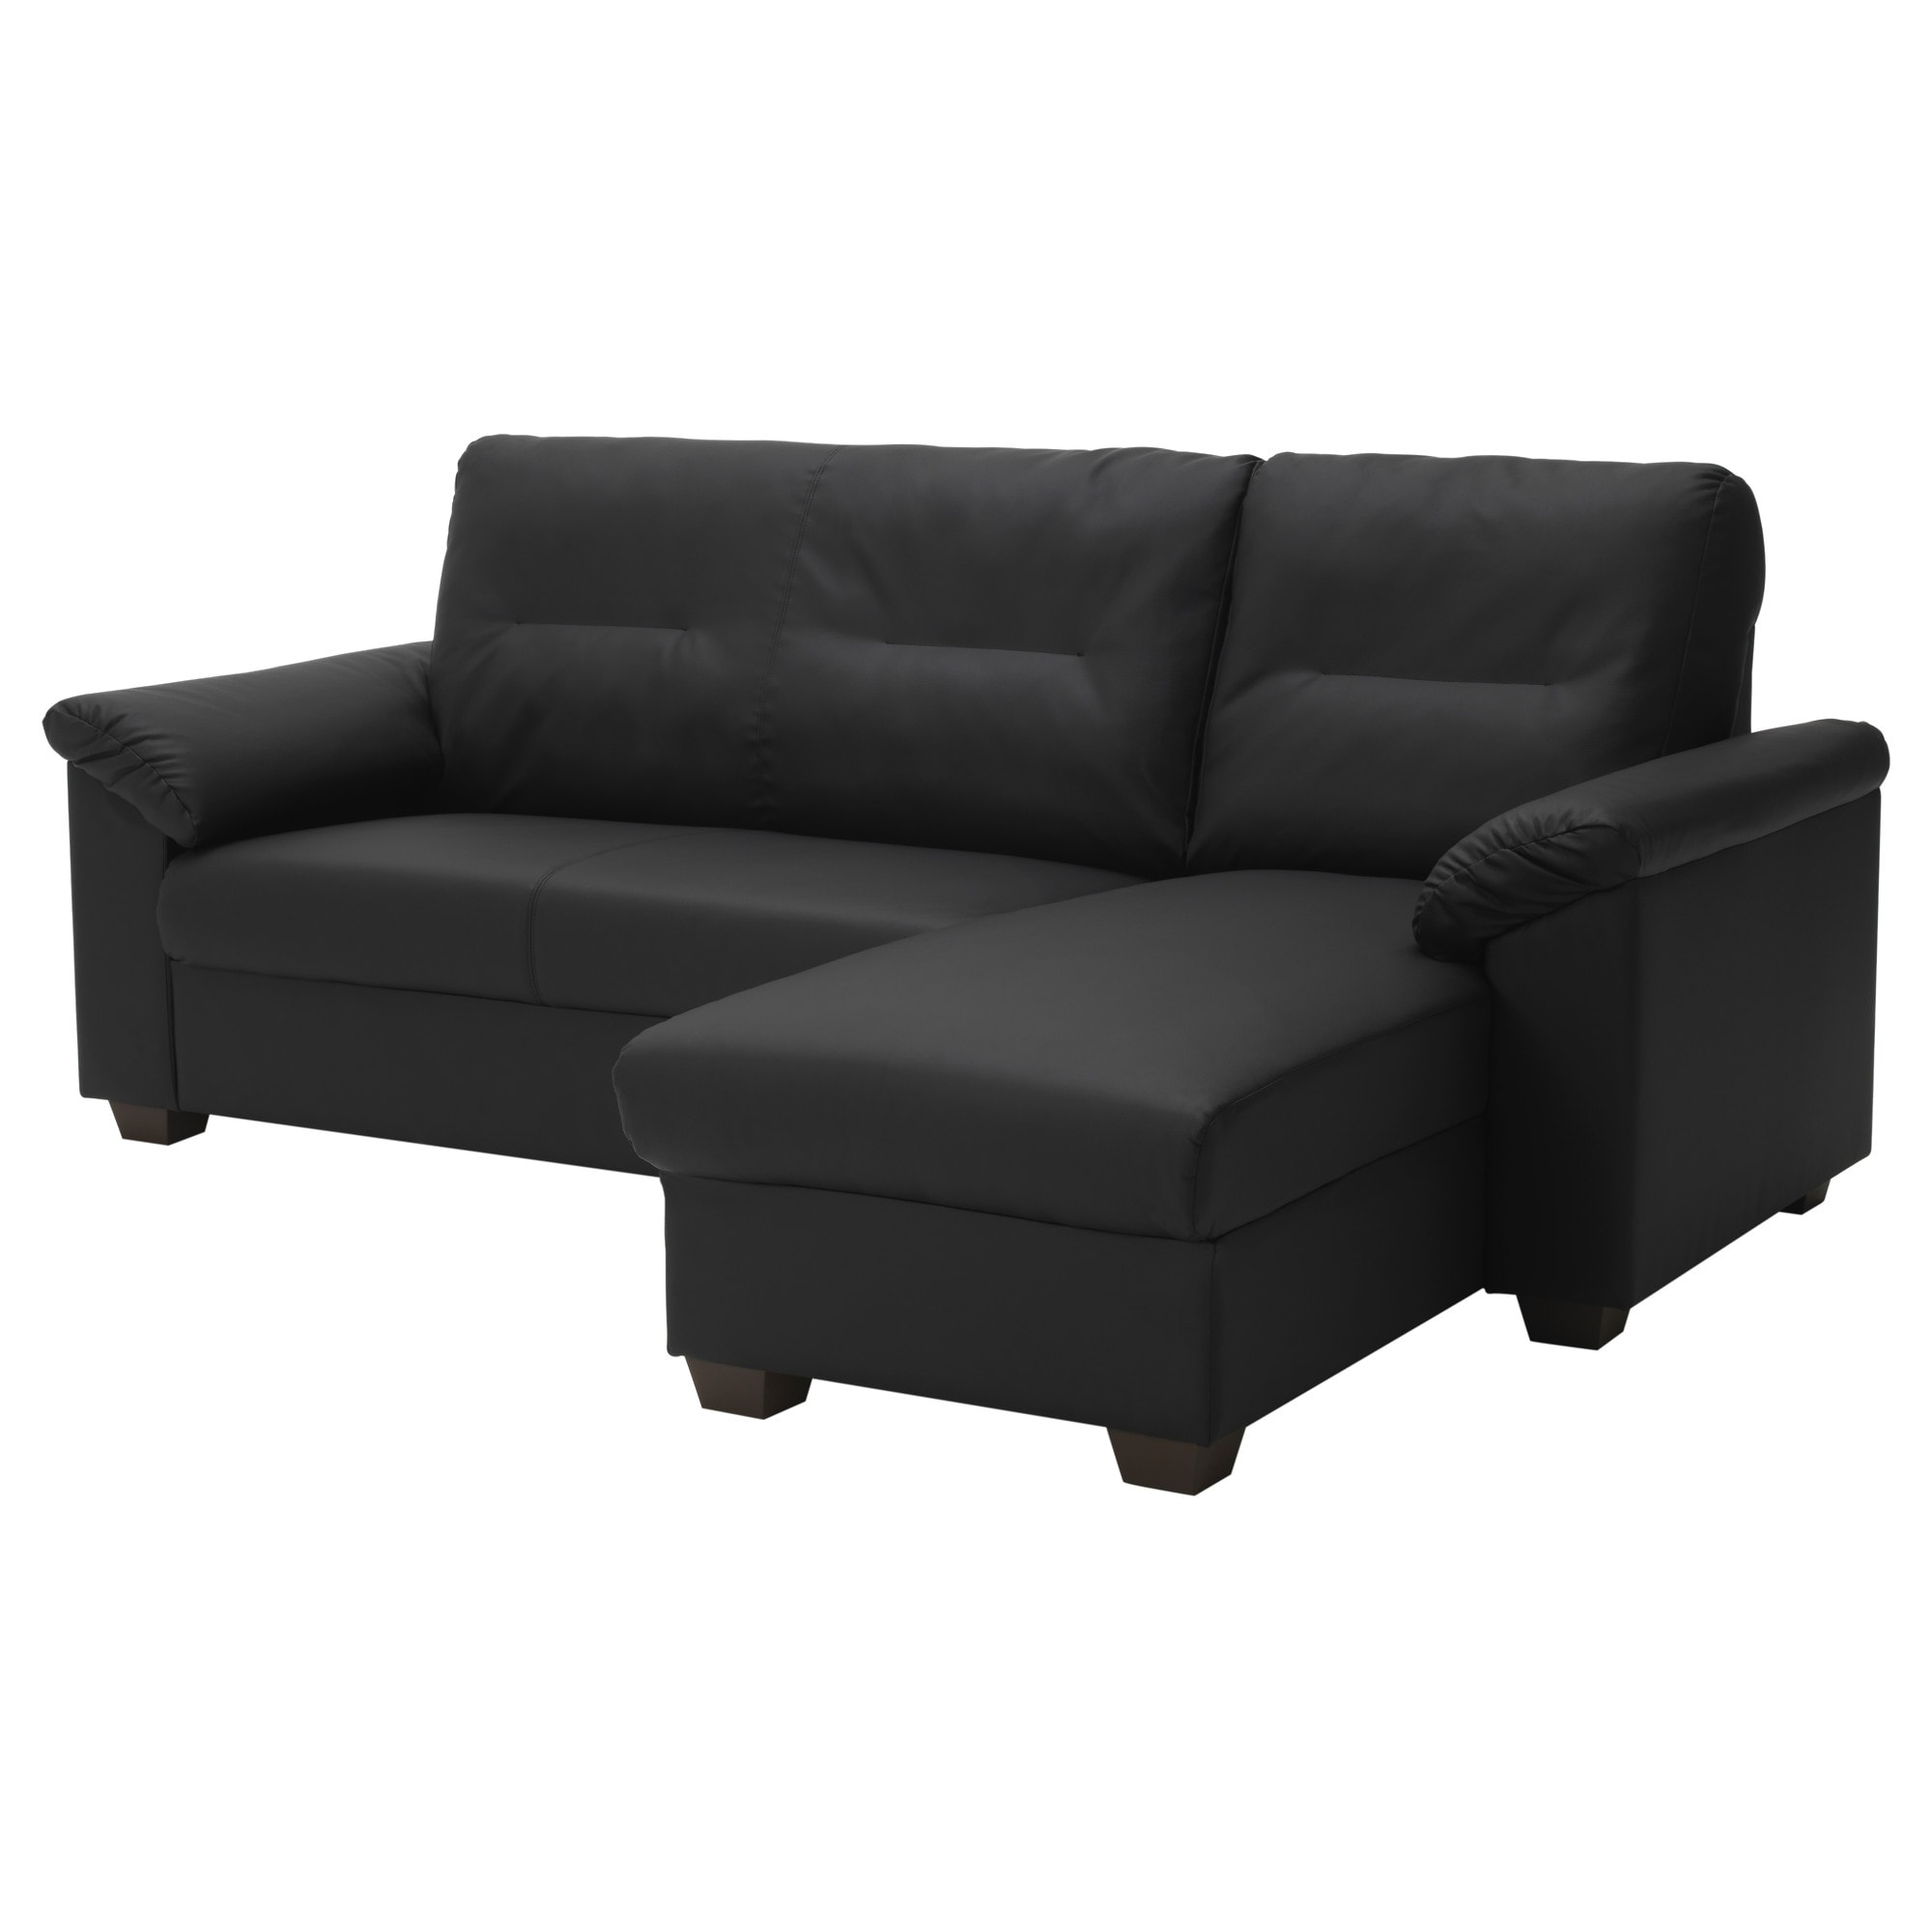 Leather Sectional Sofa Bed Reviews Hereo